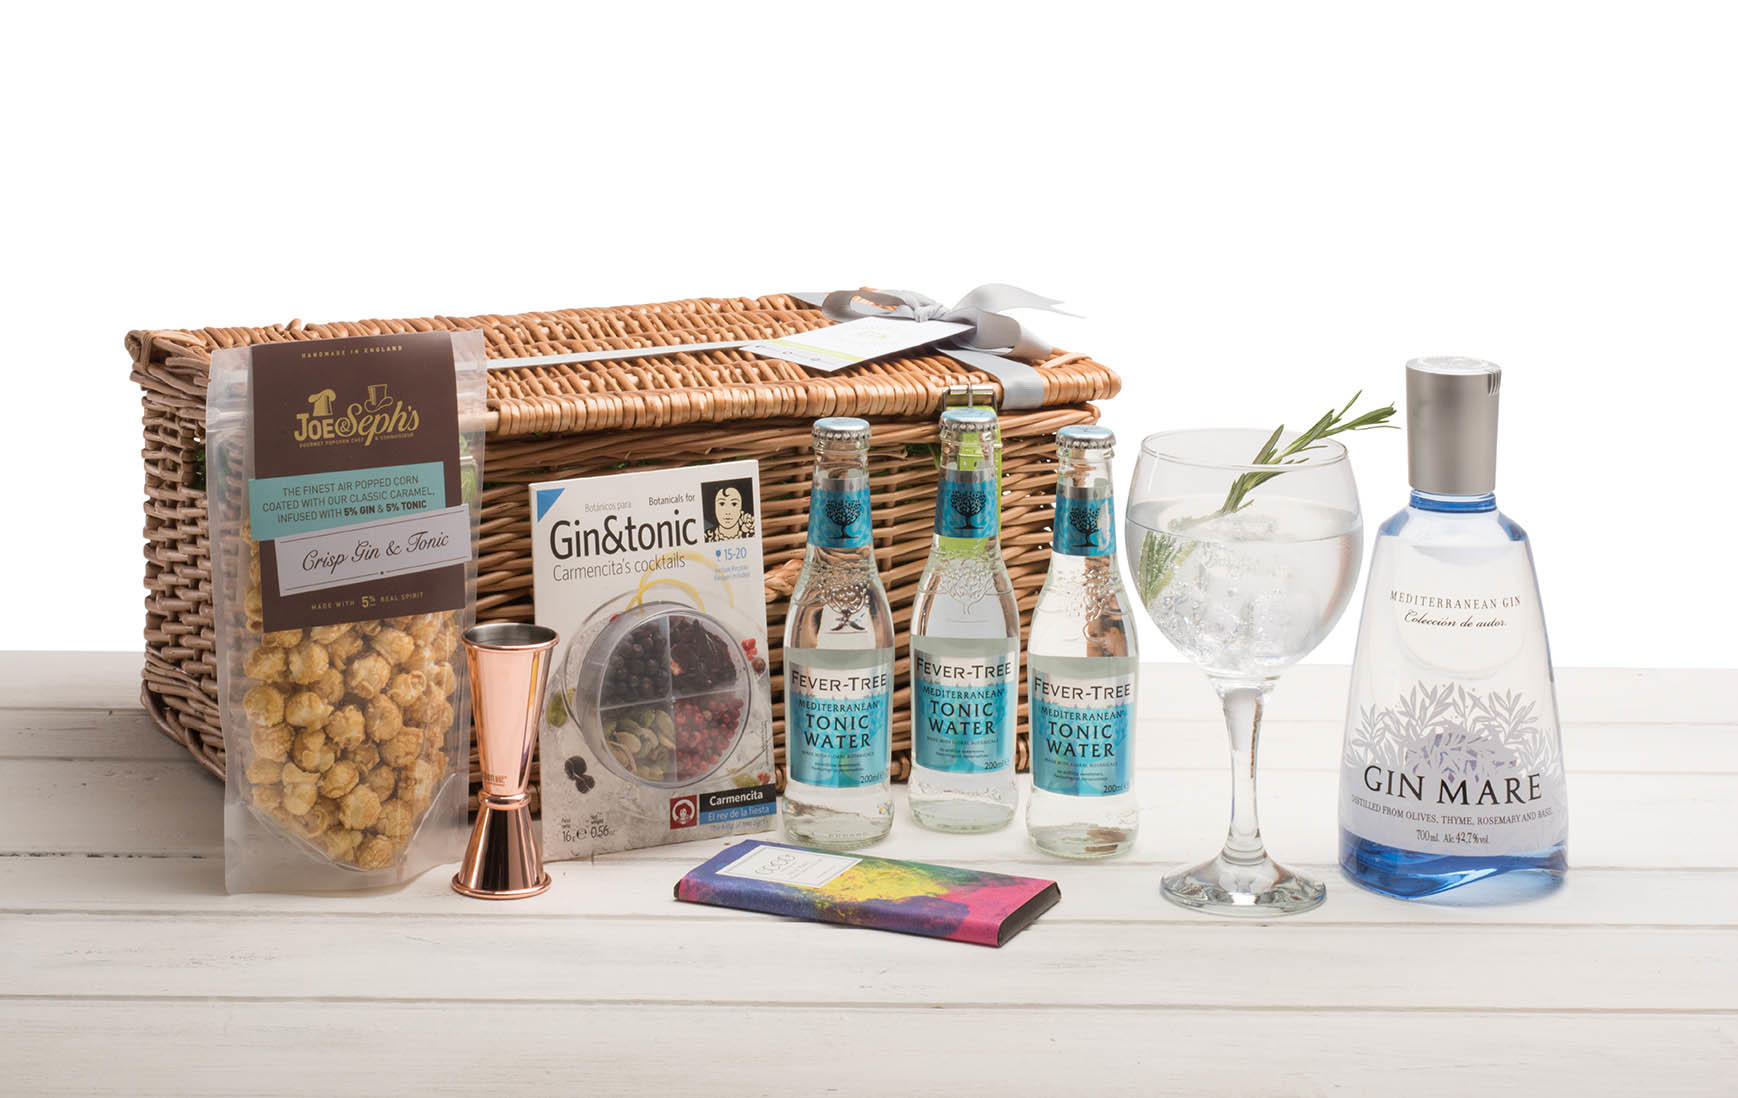 Gin Mare Wicker Hamper